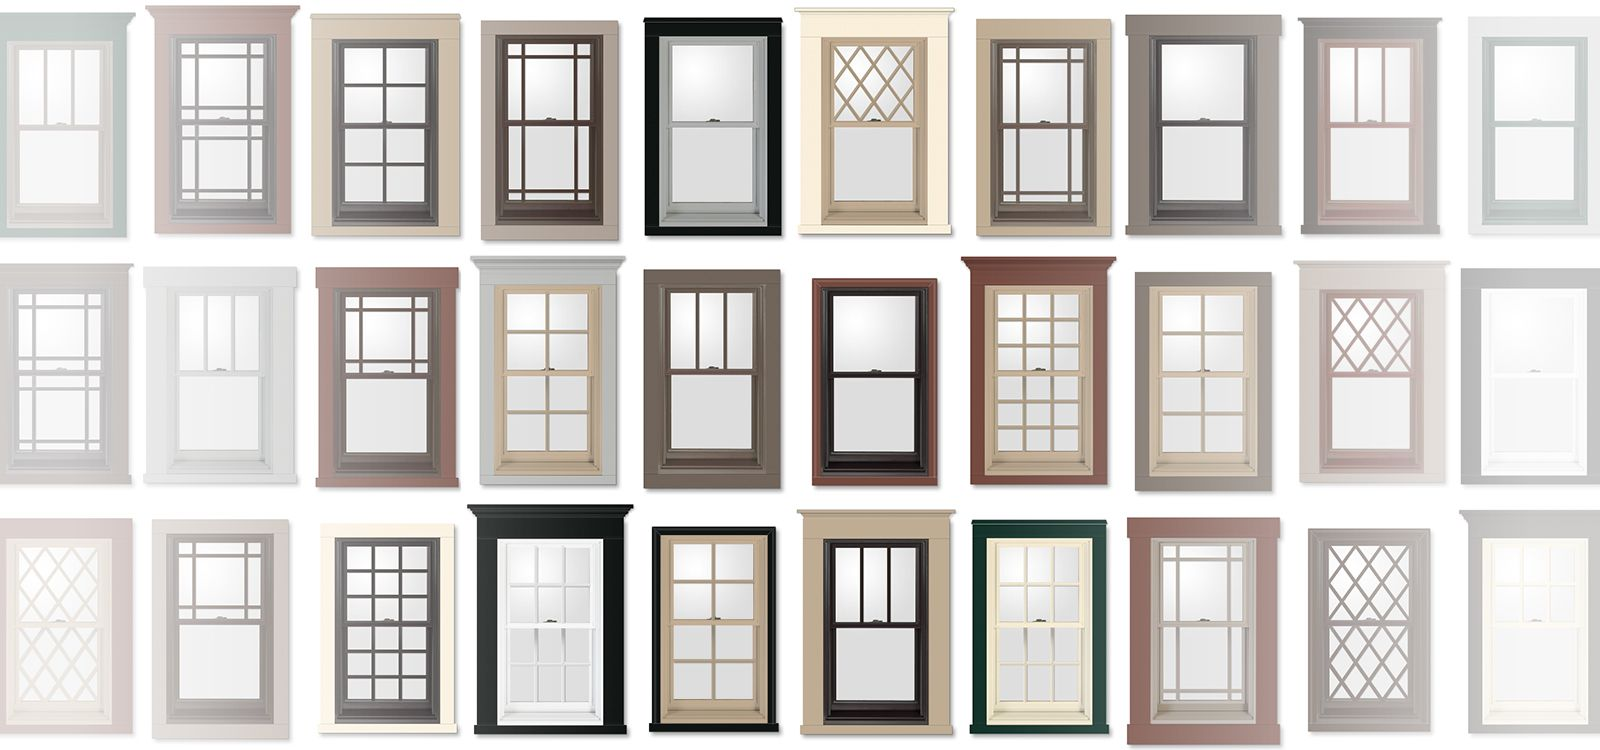 Andersen windows and patio doors 1 in quality and used for Window sizes for homes